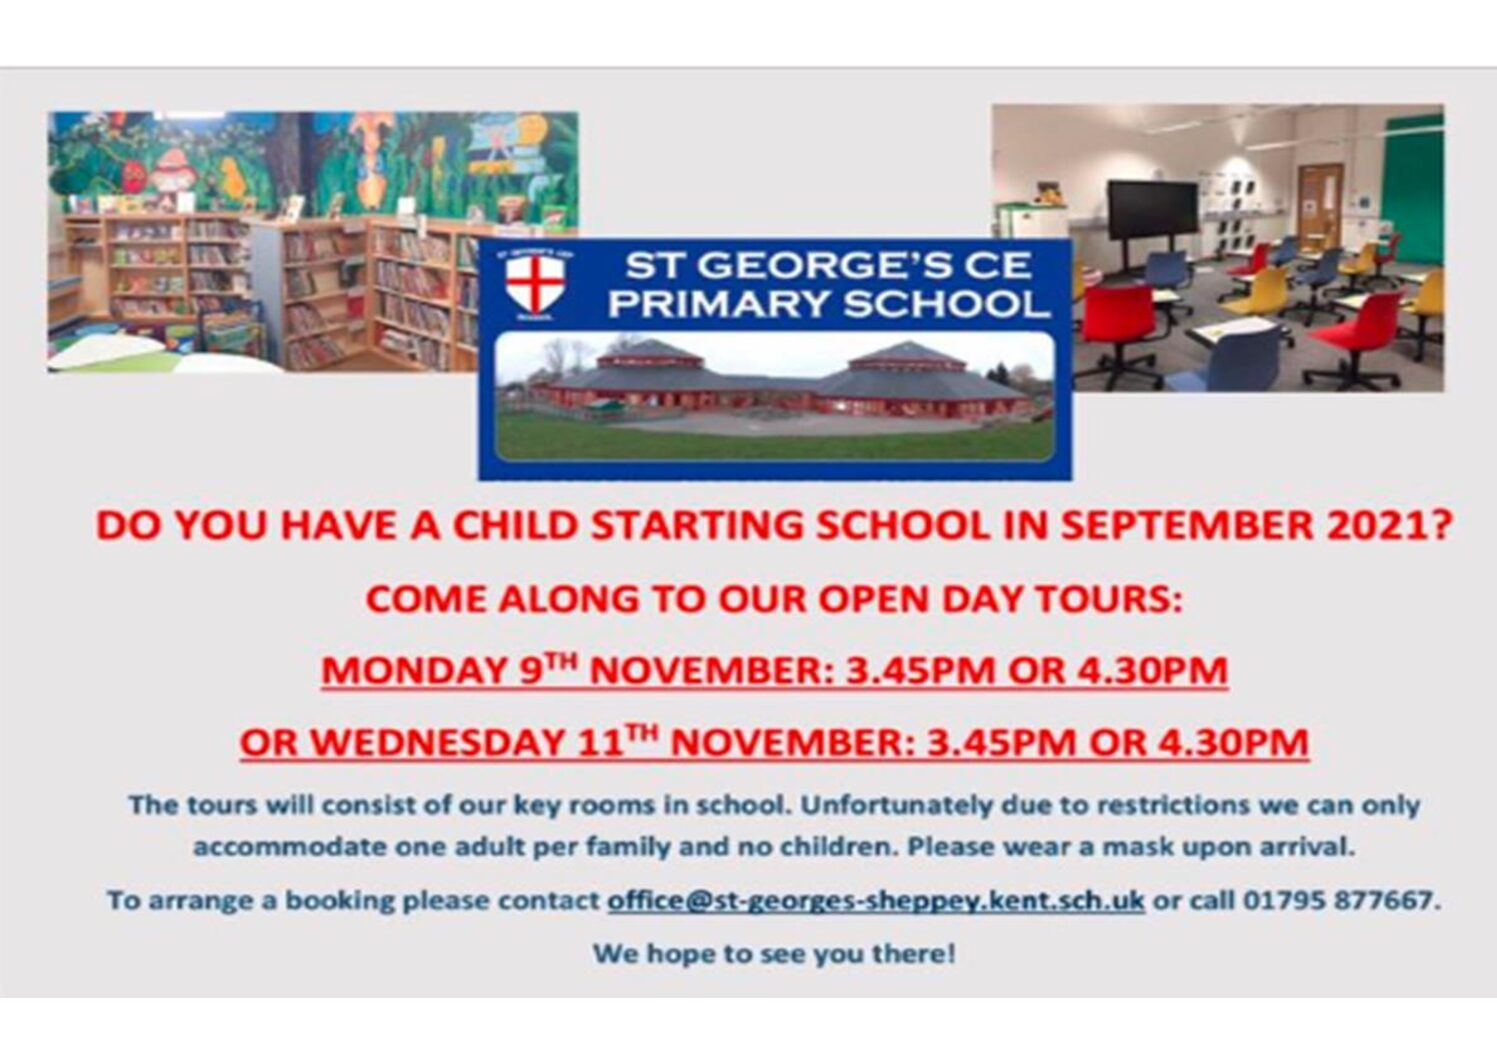 St Georges CE Primary School Open Days 2020